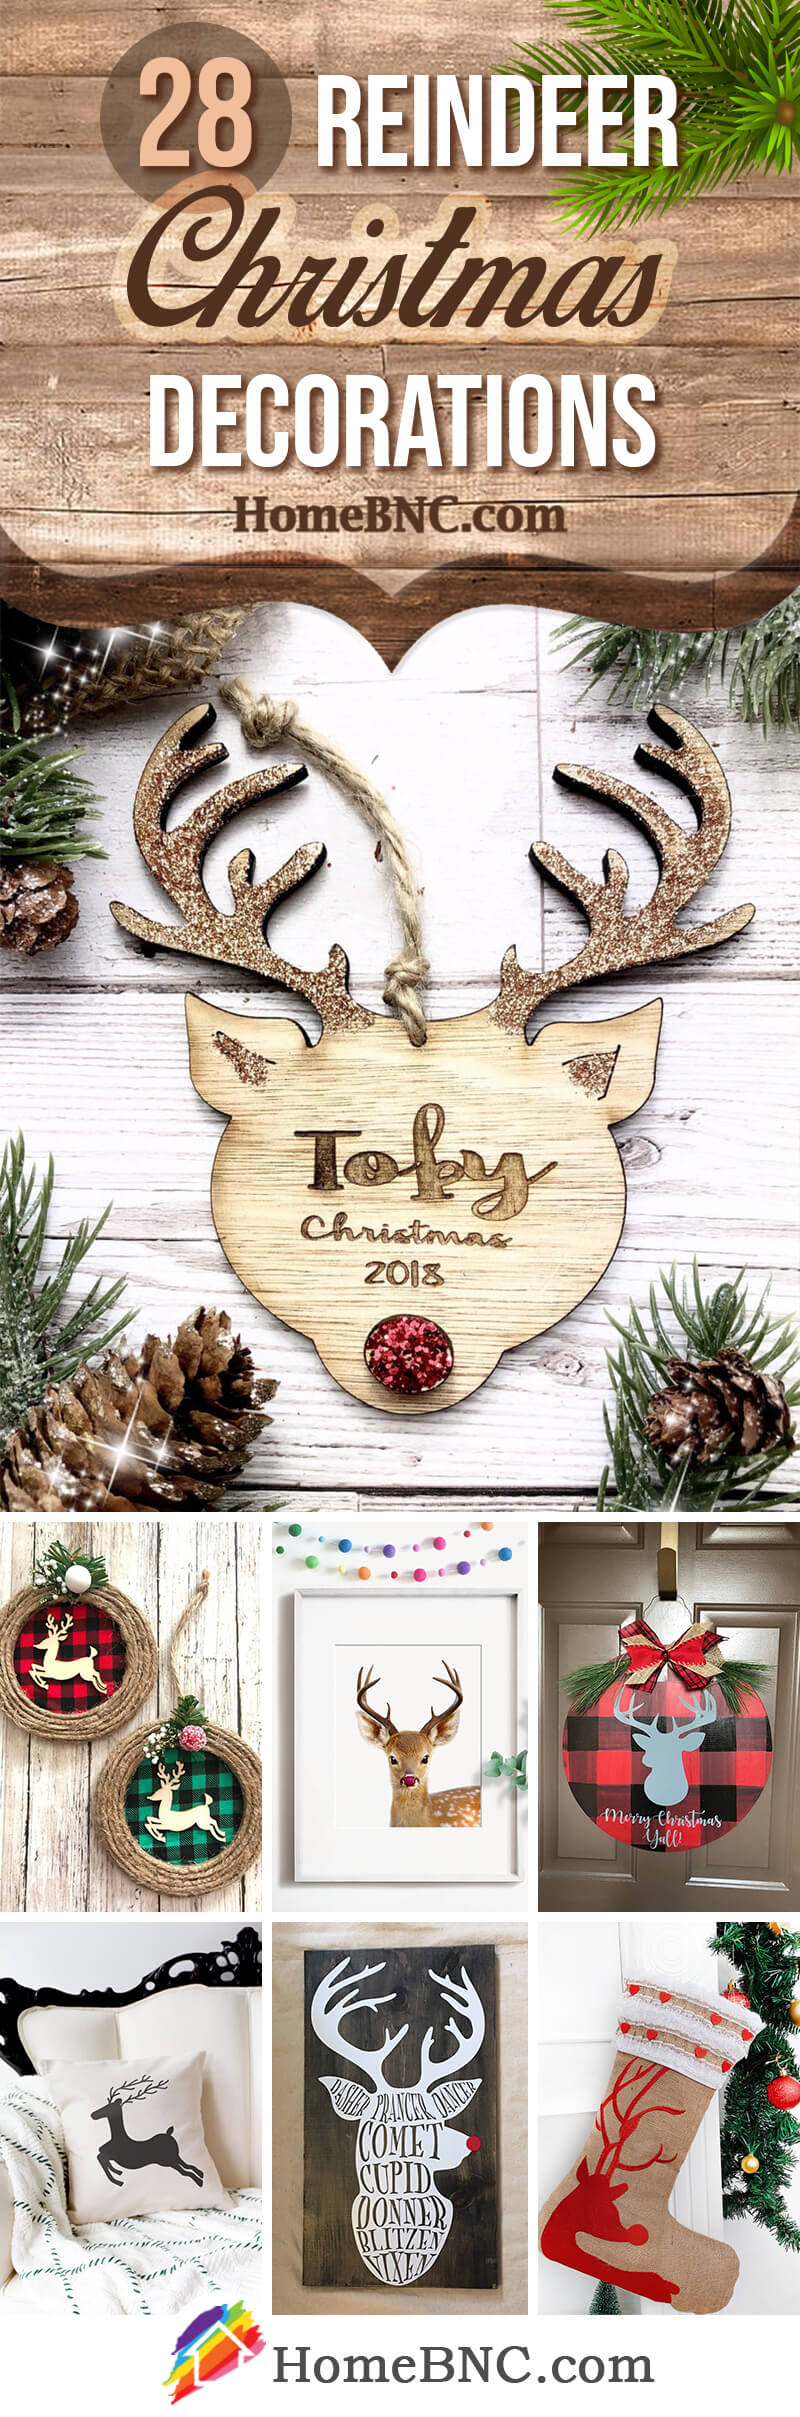 28 Best Christmas Reindeer Decoration Ideas For 2020